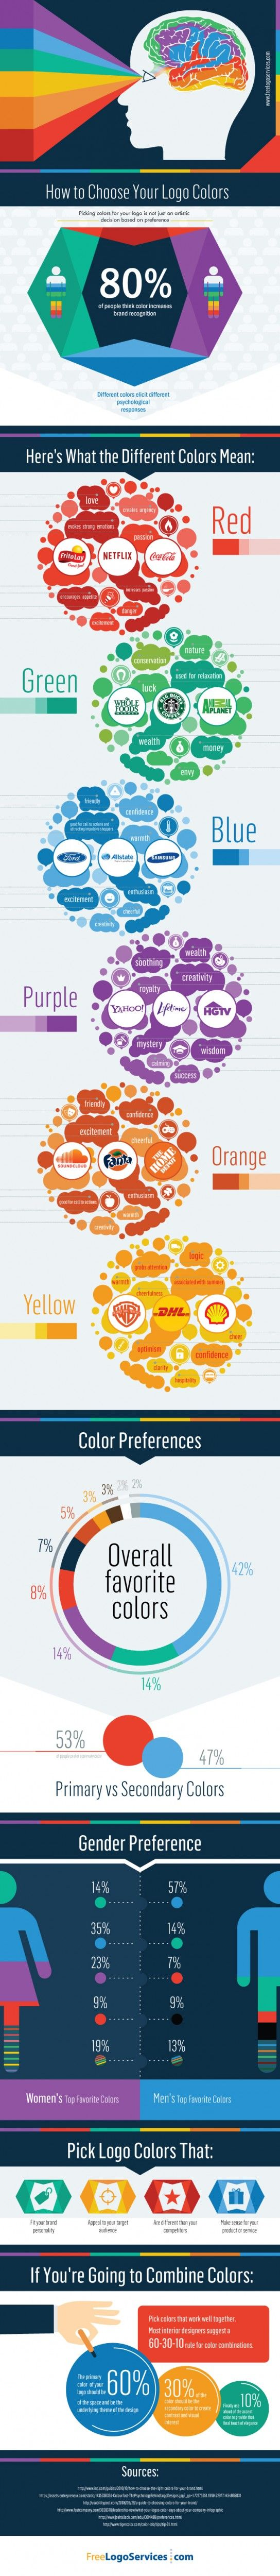 How to Choose Your Logo Colors: Infographic